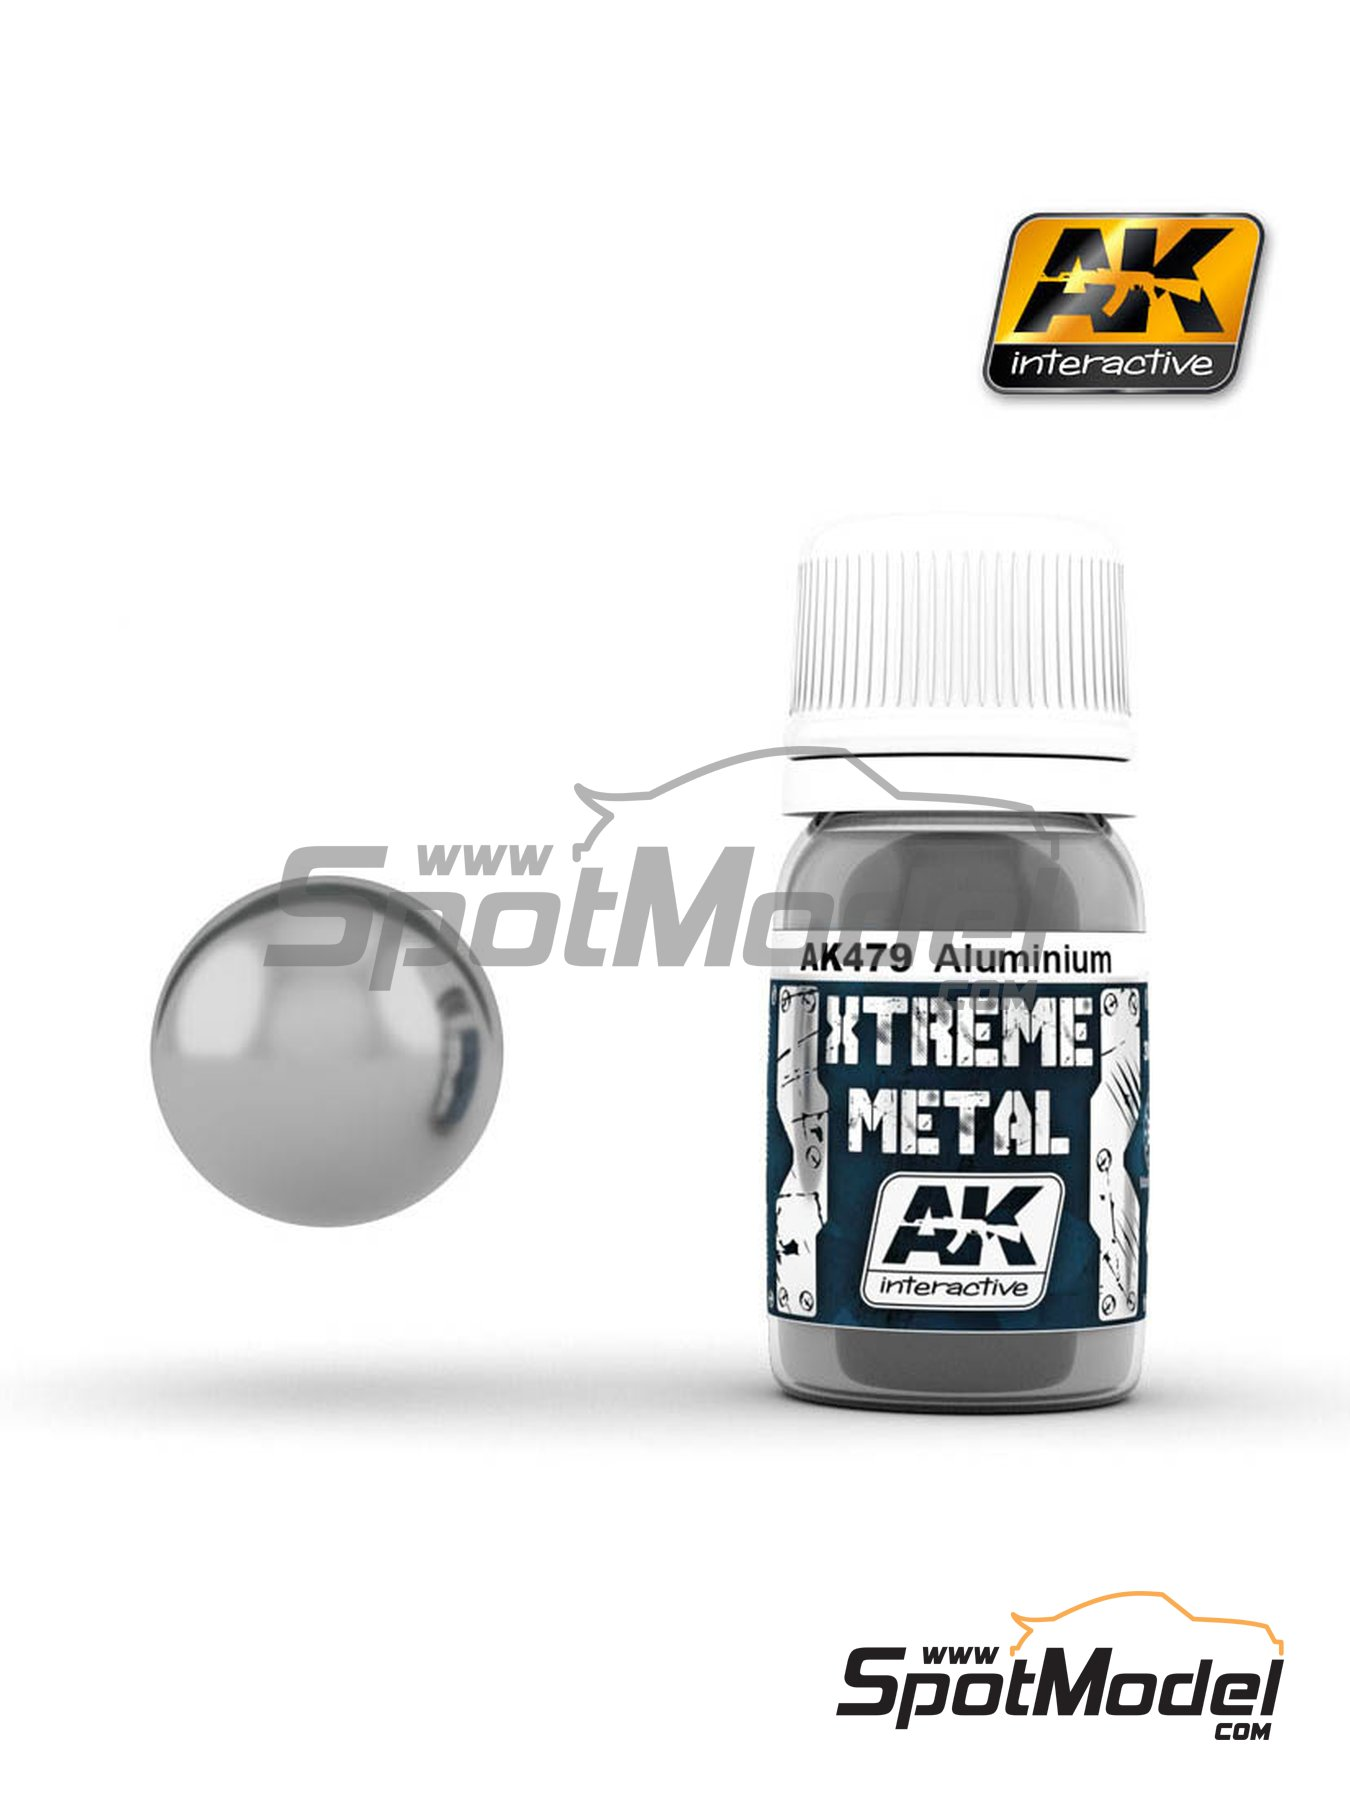 Aluminium | Xtreme metal paint manufactured by AK Interactive (ref. AK-479) image